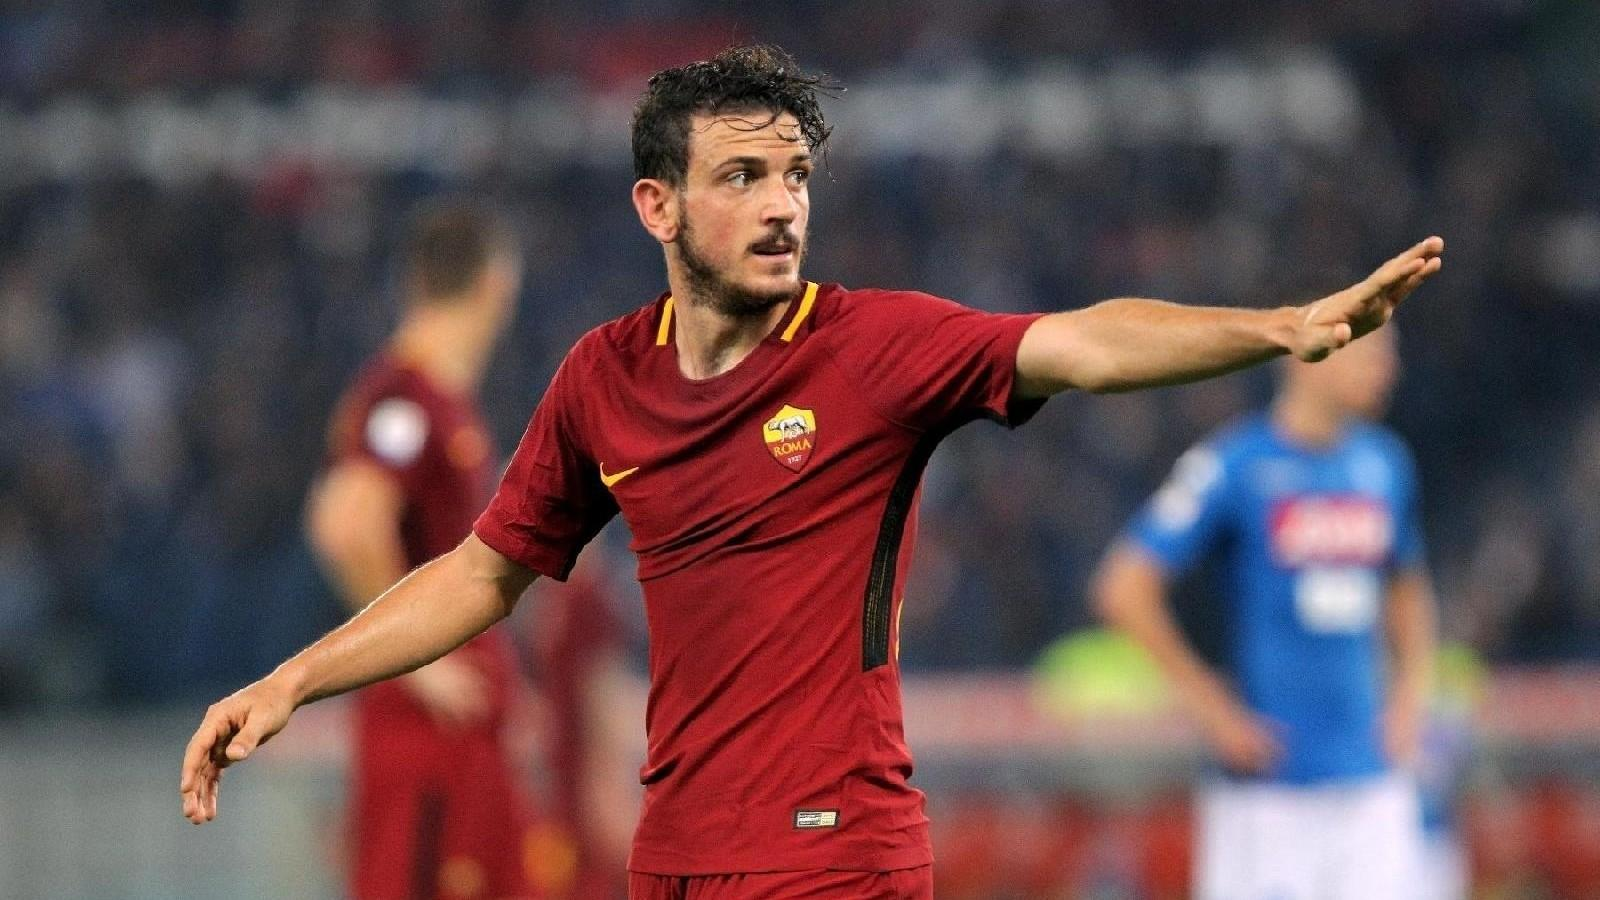 VIDEO - Roma Awards 2017: ecco le scelte di Alessandro Florenzi